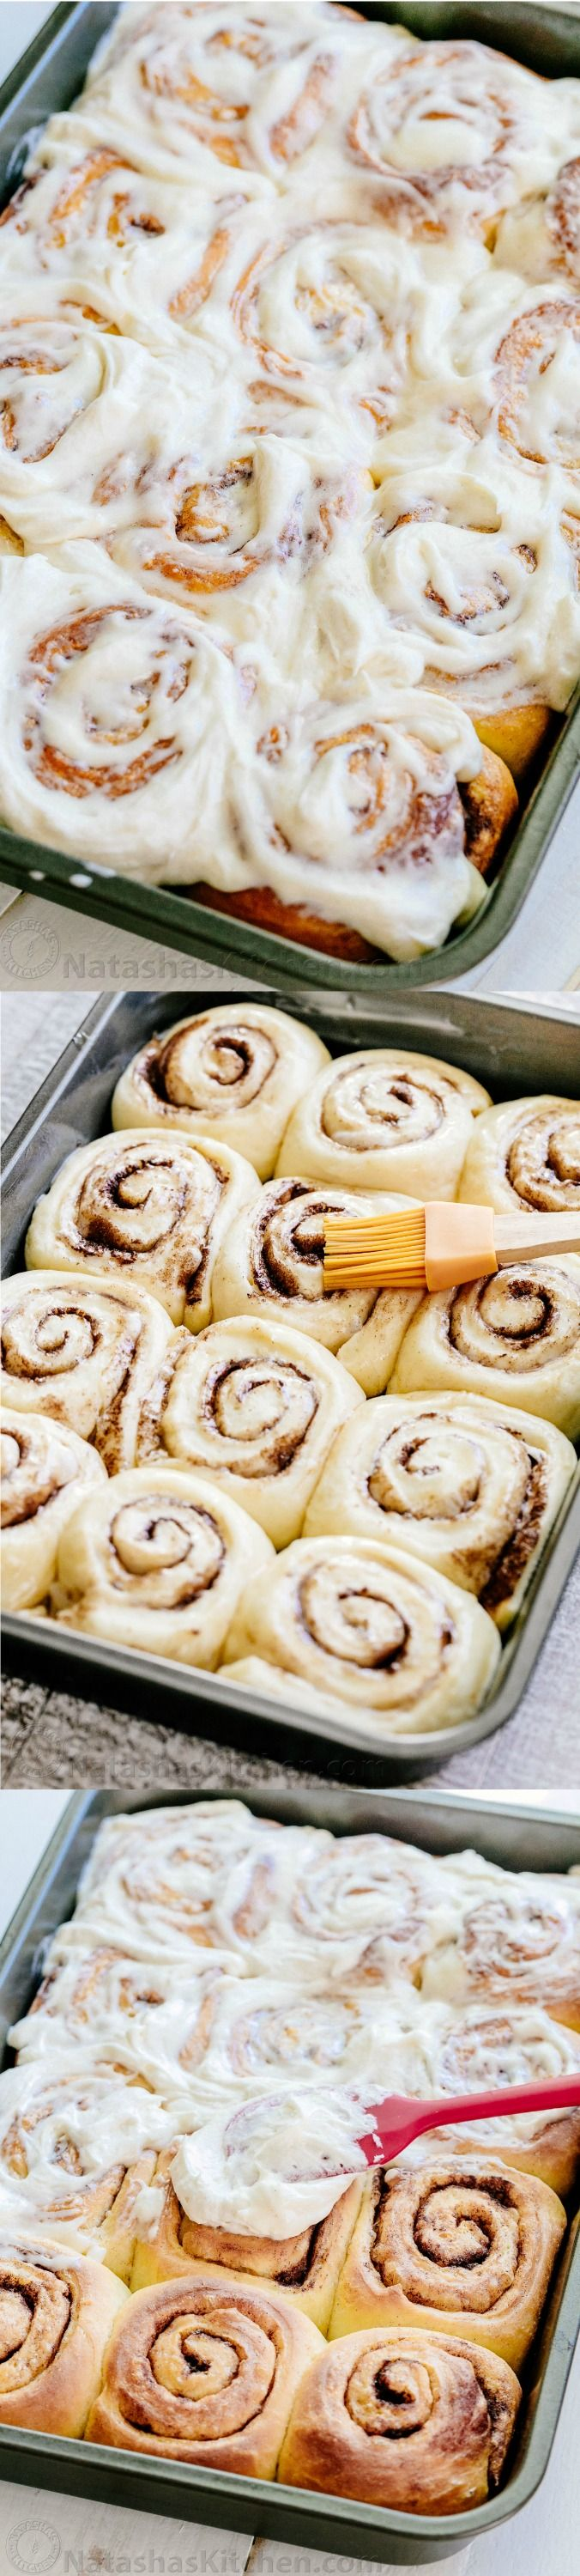 Melt-in-you-mouth overnight cinnamon rolls with whipped cream cheese icing. Perfect for holidays and busy mornings. The best make-ahead cinnamon rolls!